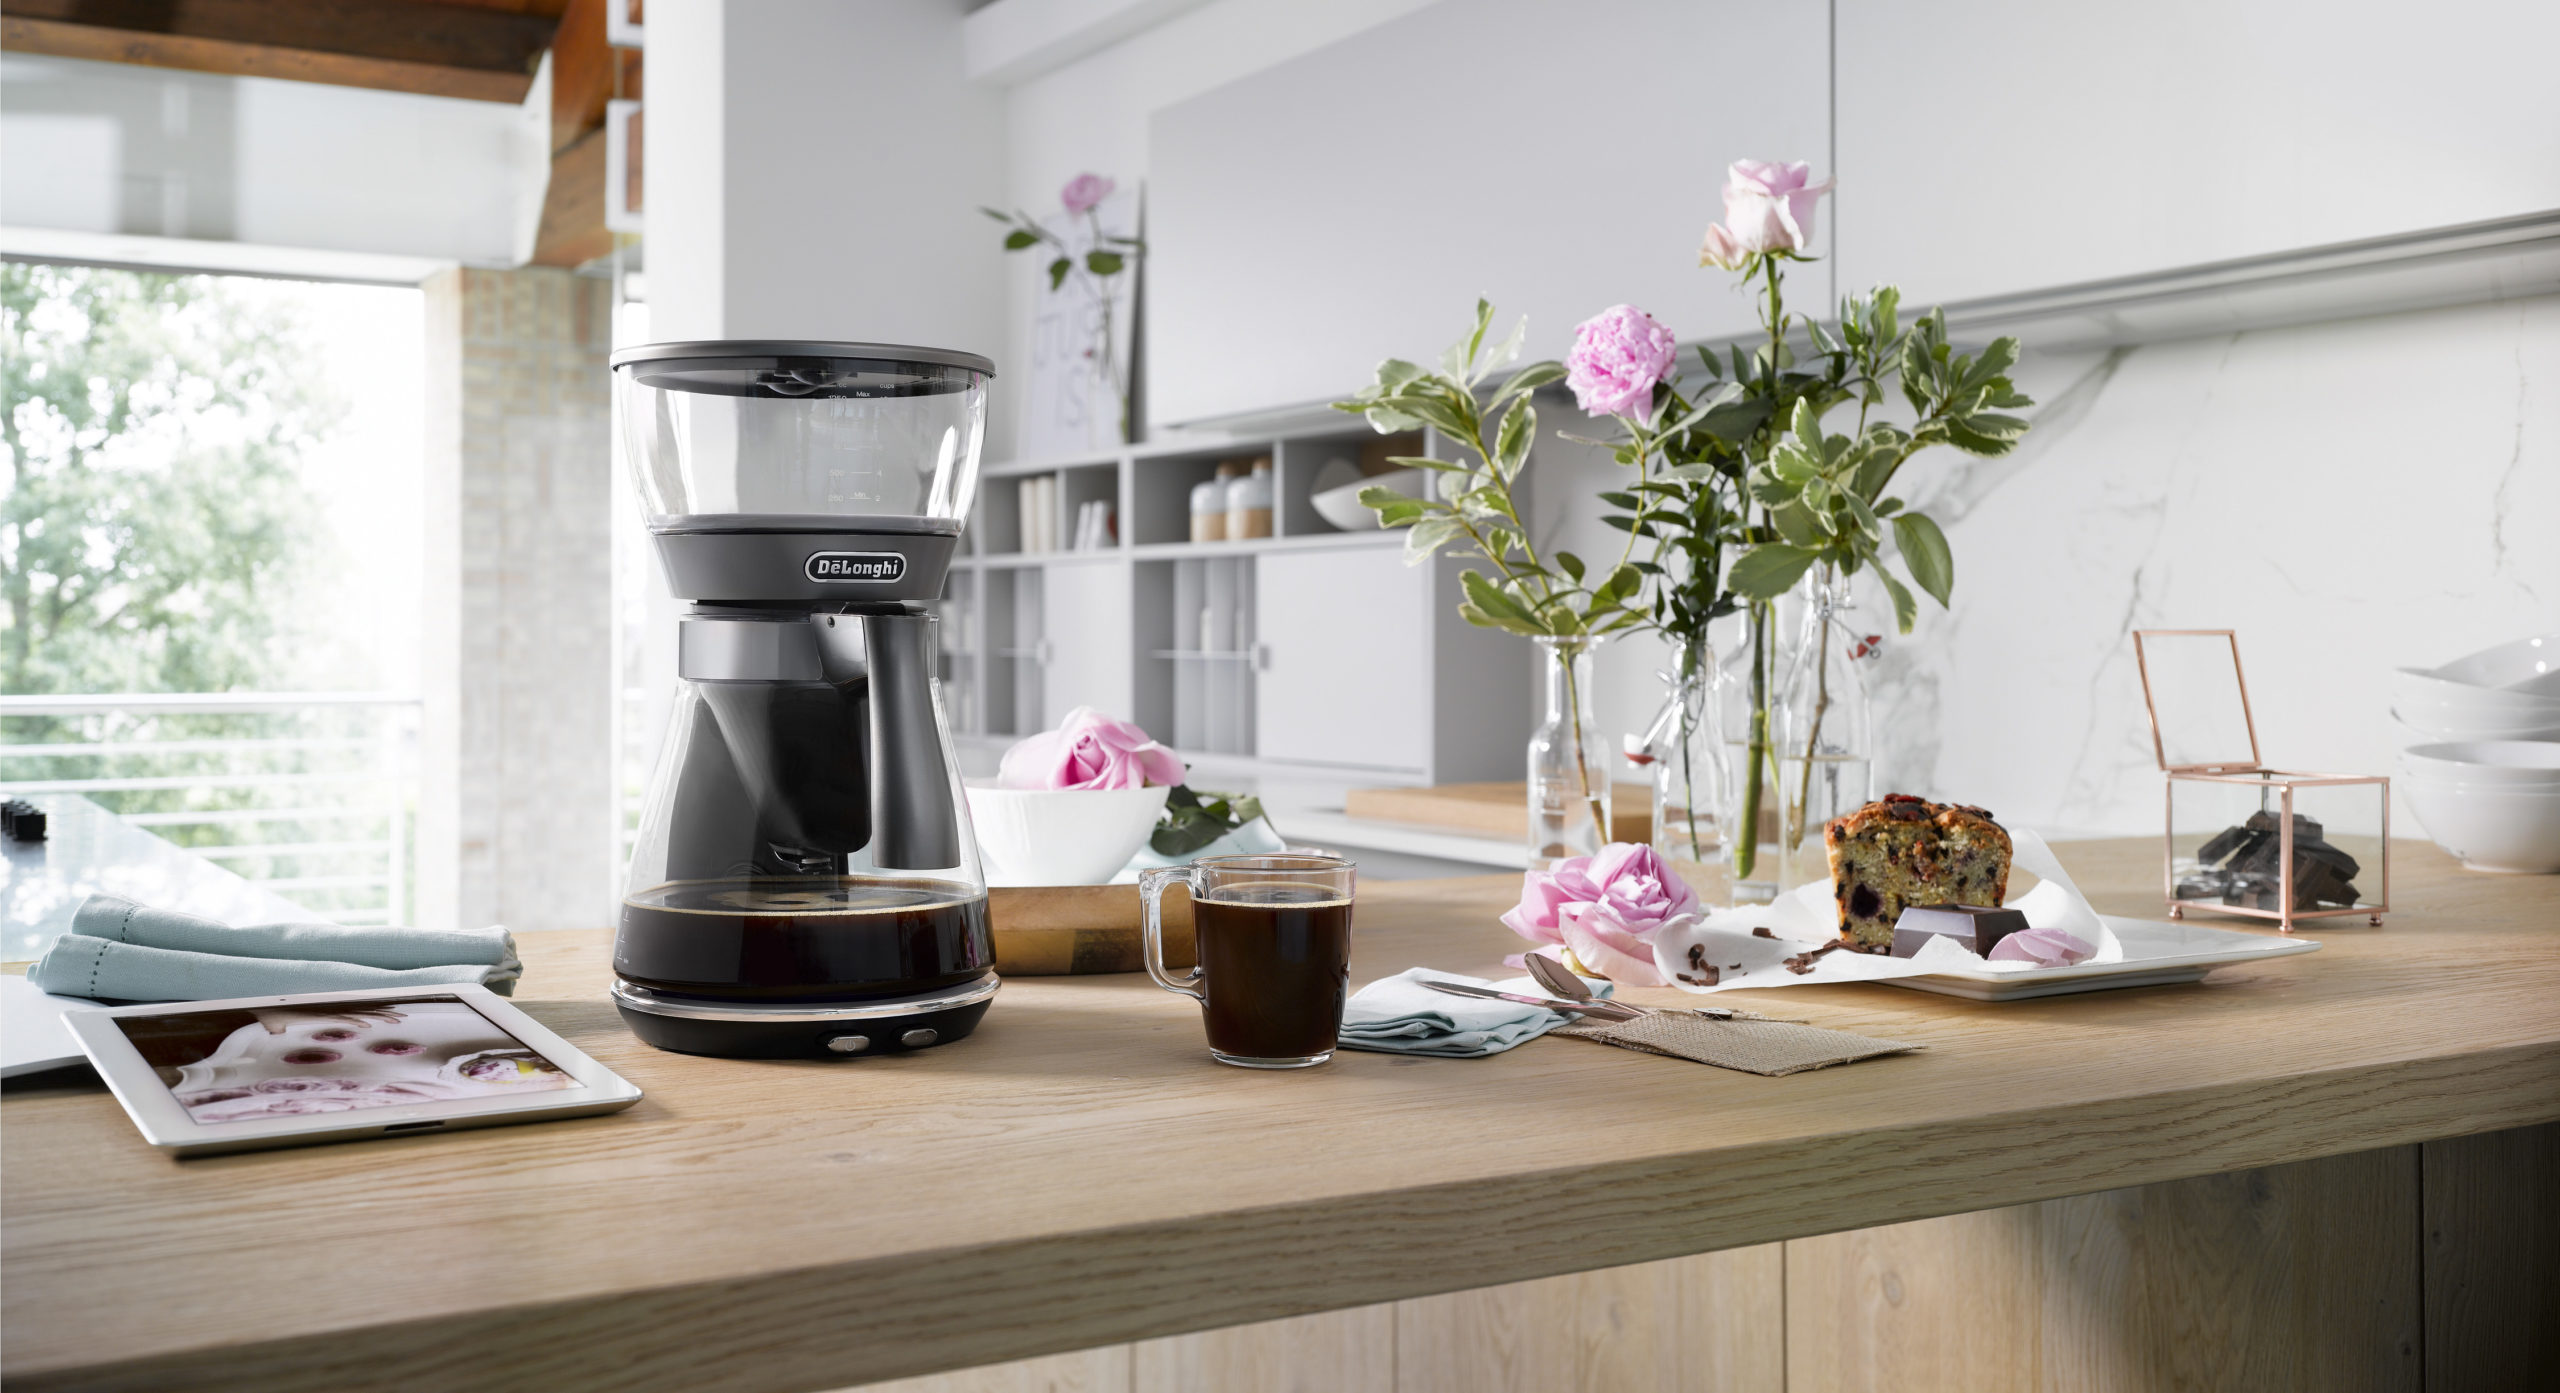 A De'Longhi Drip Coffee Maker on a table